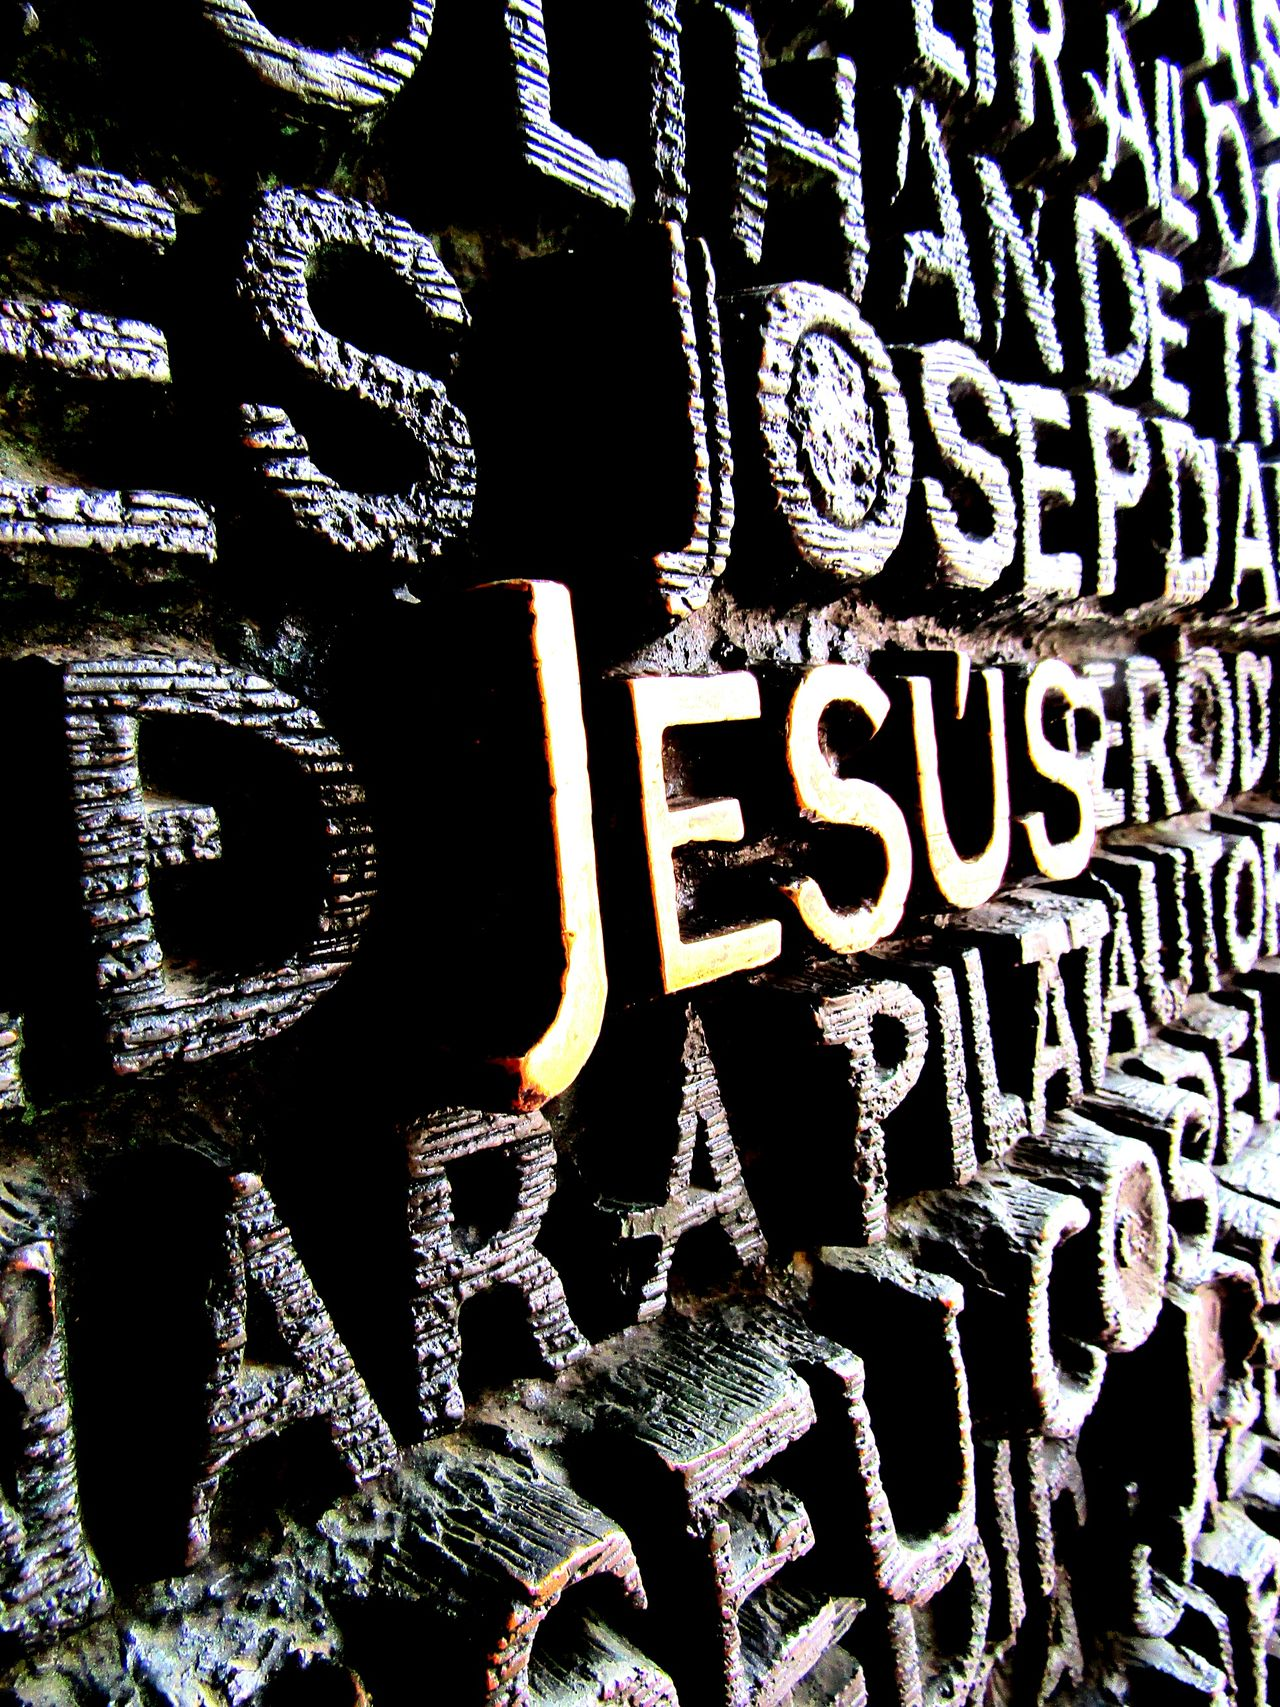 Gate Jesus Gold Black Check This Out Tag Writing Writing On The Walls Architecturephotography EyeEmBestEdits Barcelona Gaudi Sagradafamilia Sagradafamiliabarcelona Sagradafamiliachurch From My Point Of View Statue Monument Details Eyeemcollection SagradadeFamilia Eyeemphotography Todayphotography